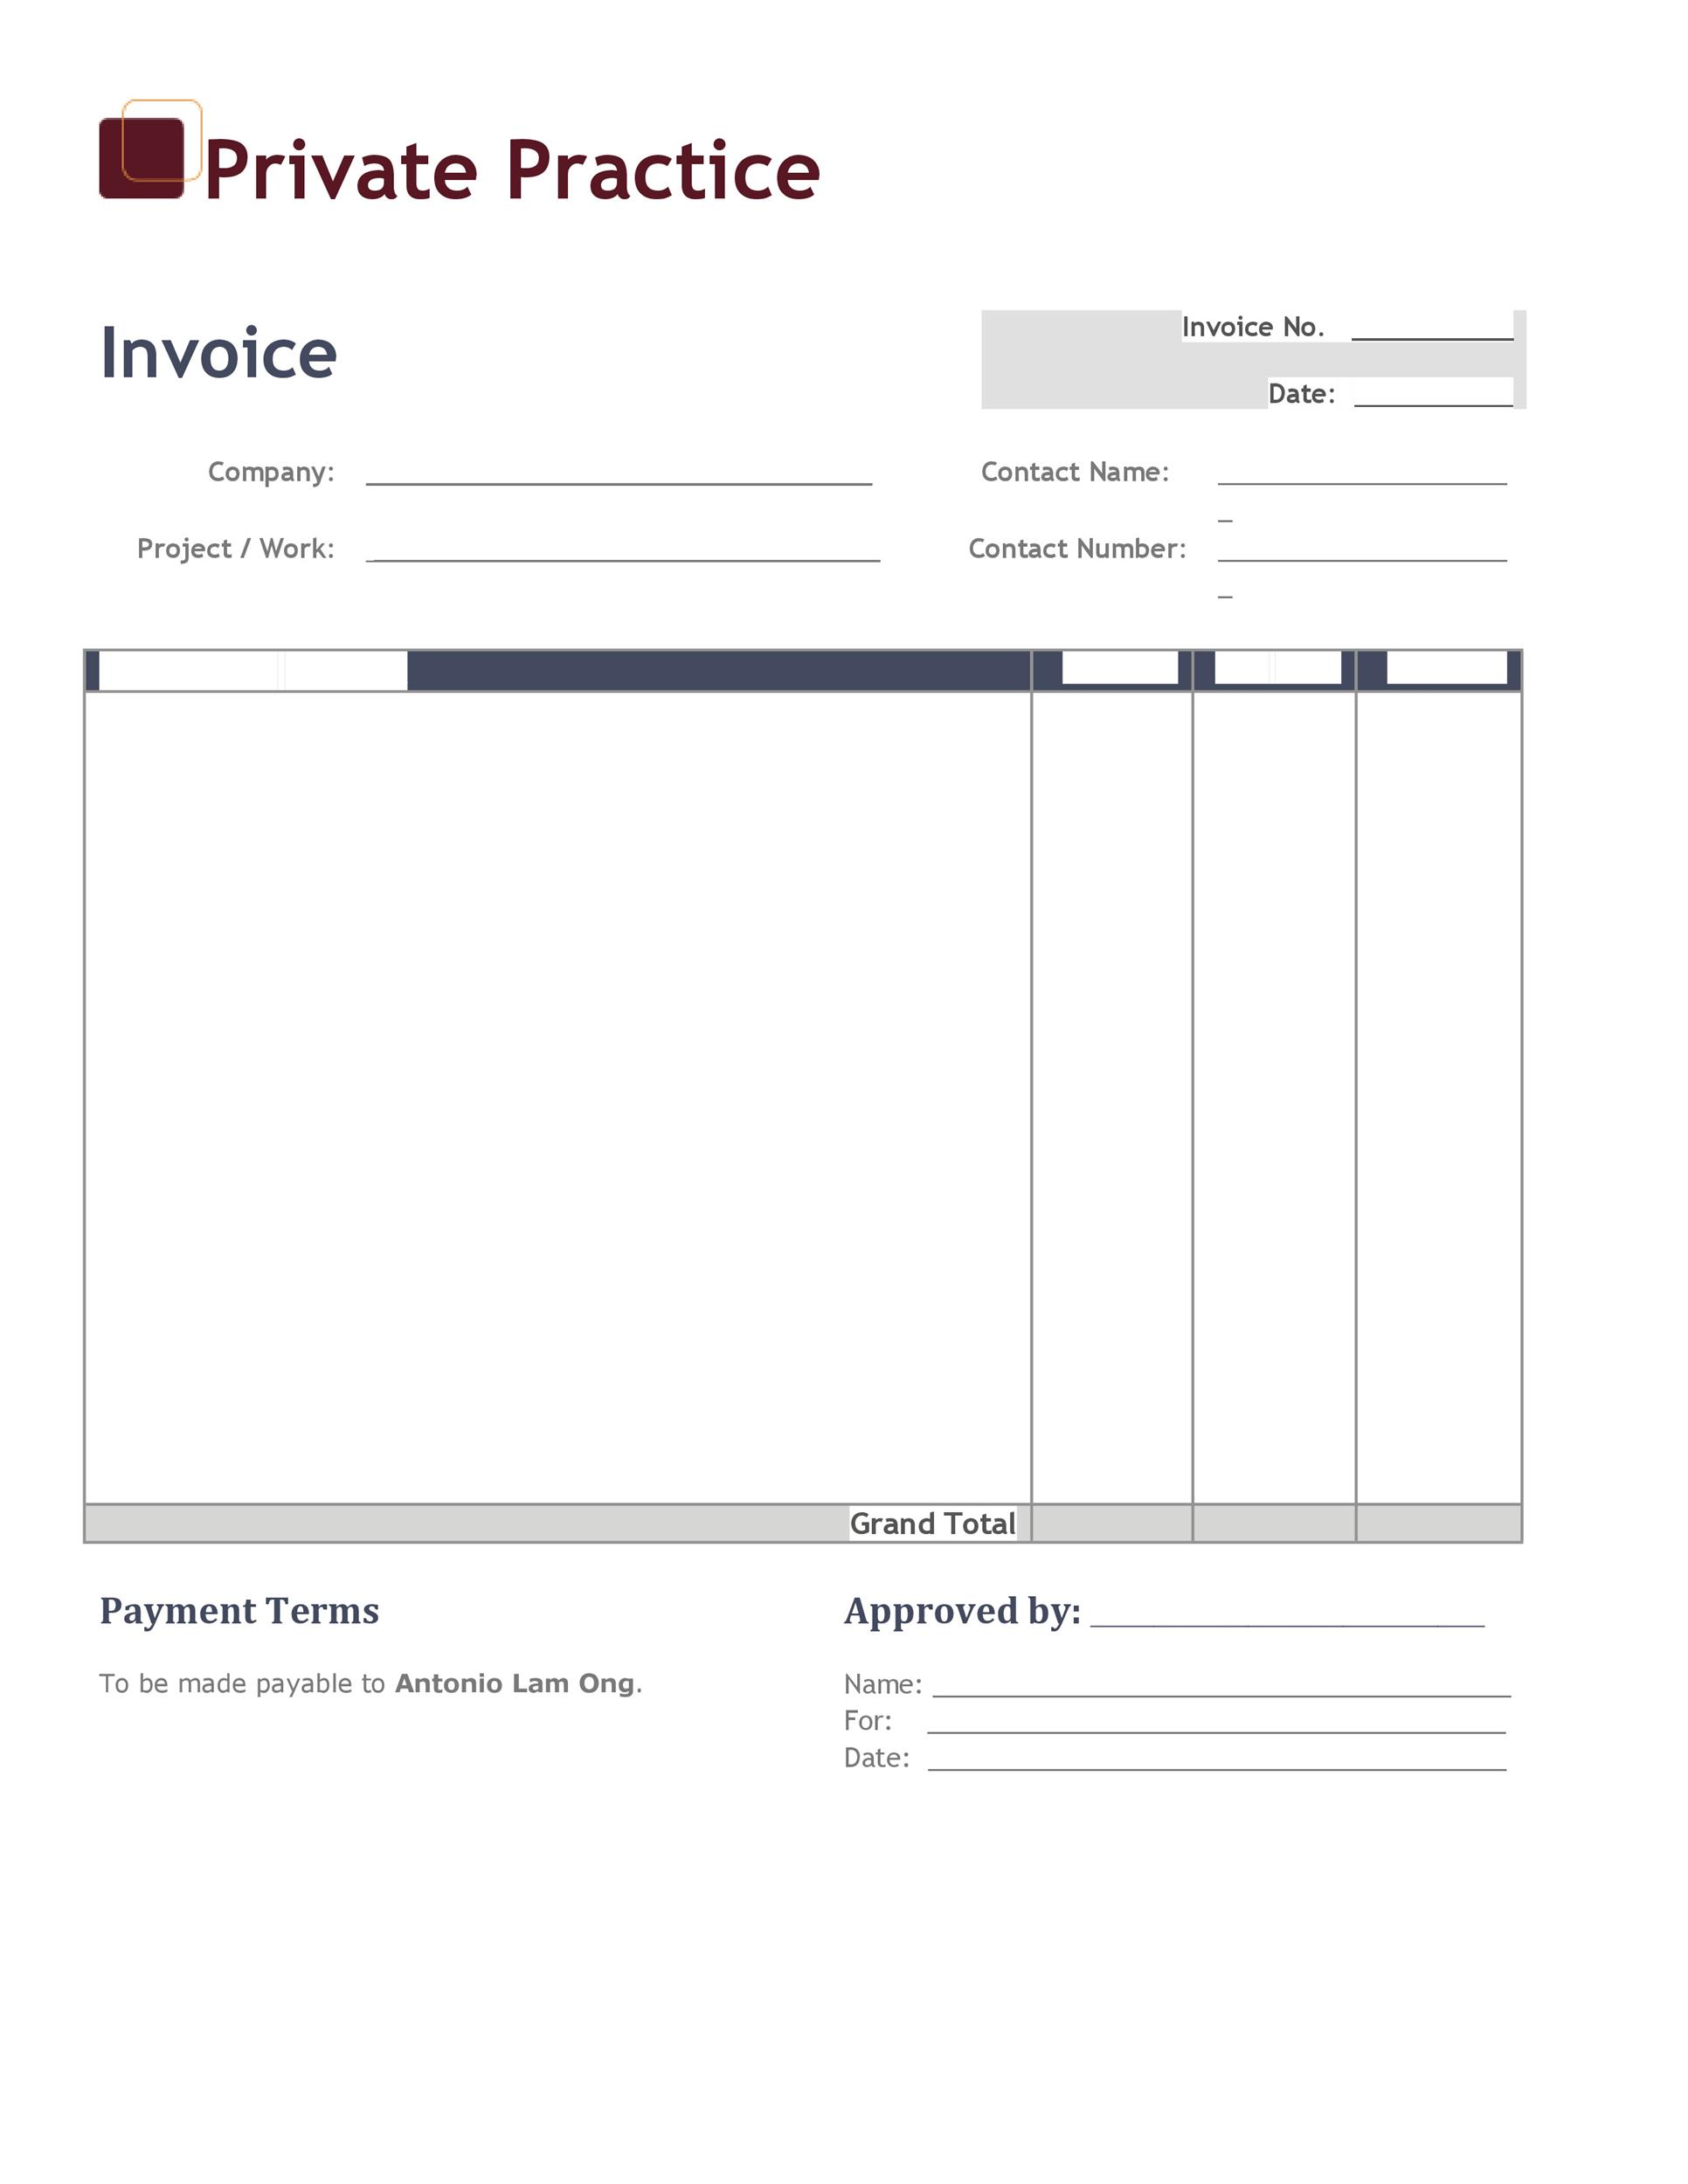 Invoice Templates Blank Commercial PDF Word Excel - Simple invoice format in excel for service business